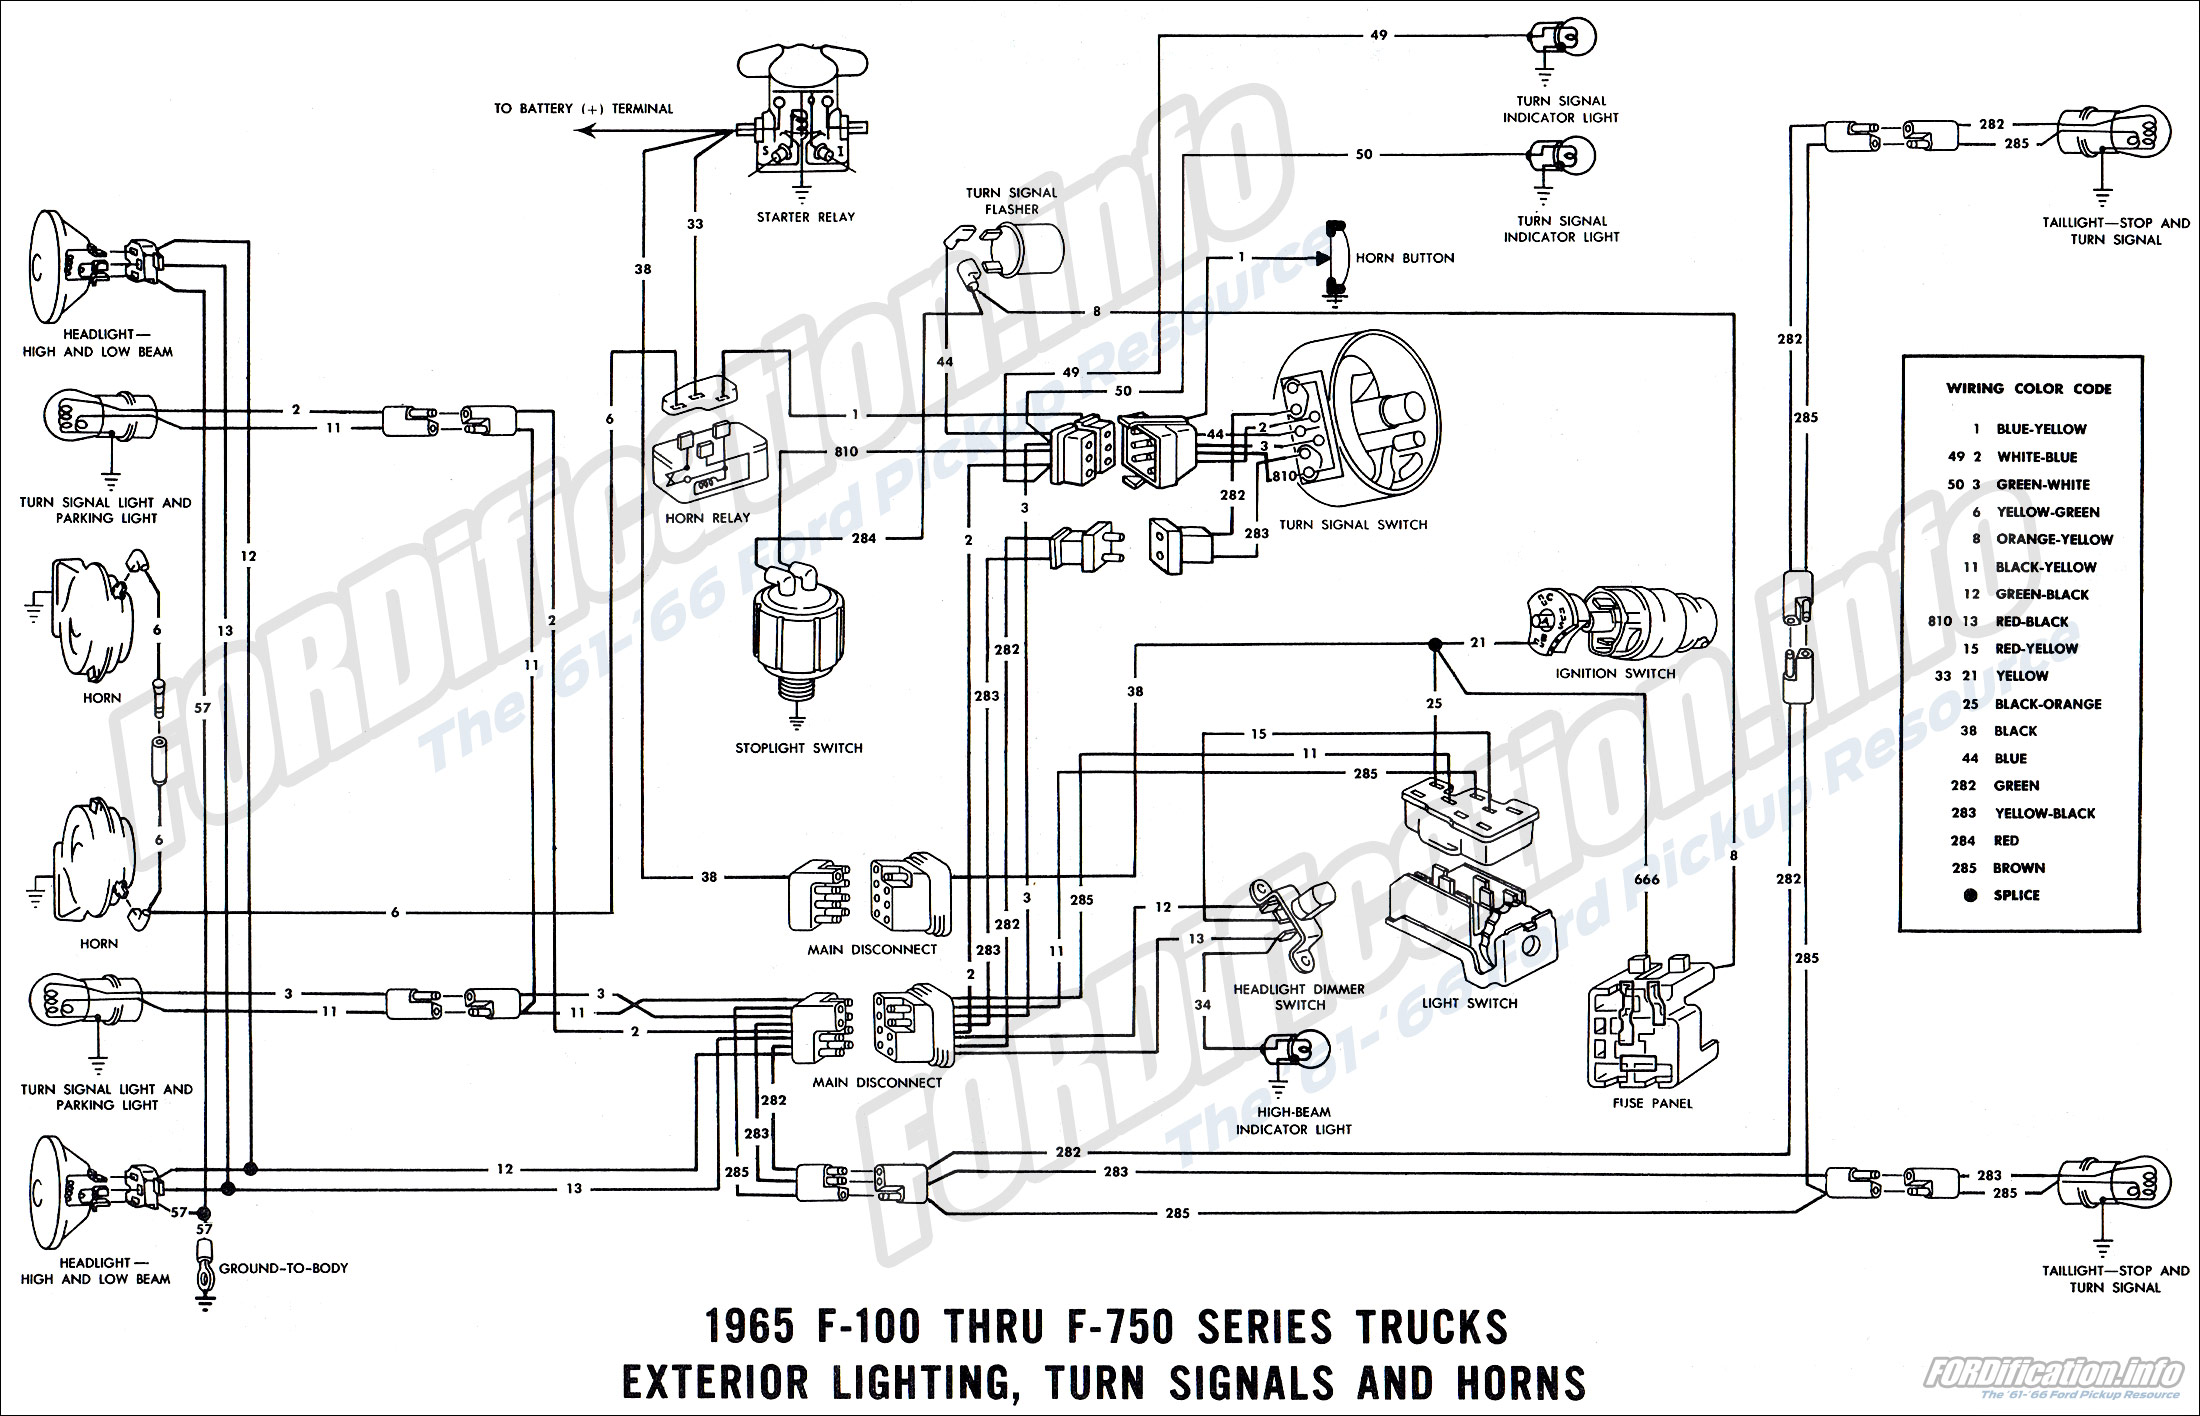 1965 ford truck wiring diagrams fordification info the '61 '66 71 ford truck wiring diagram 1965 f 100 thru f 750 series trucks exterior lighting, turn signals and horns